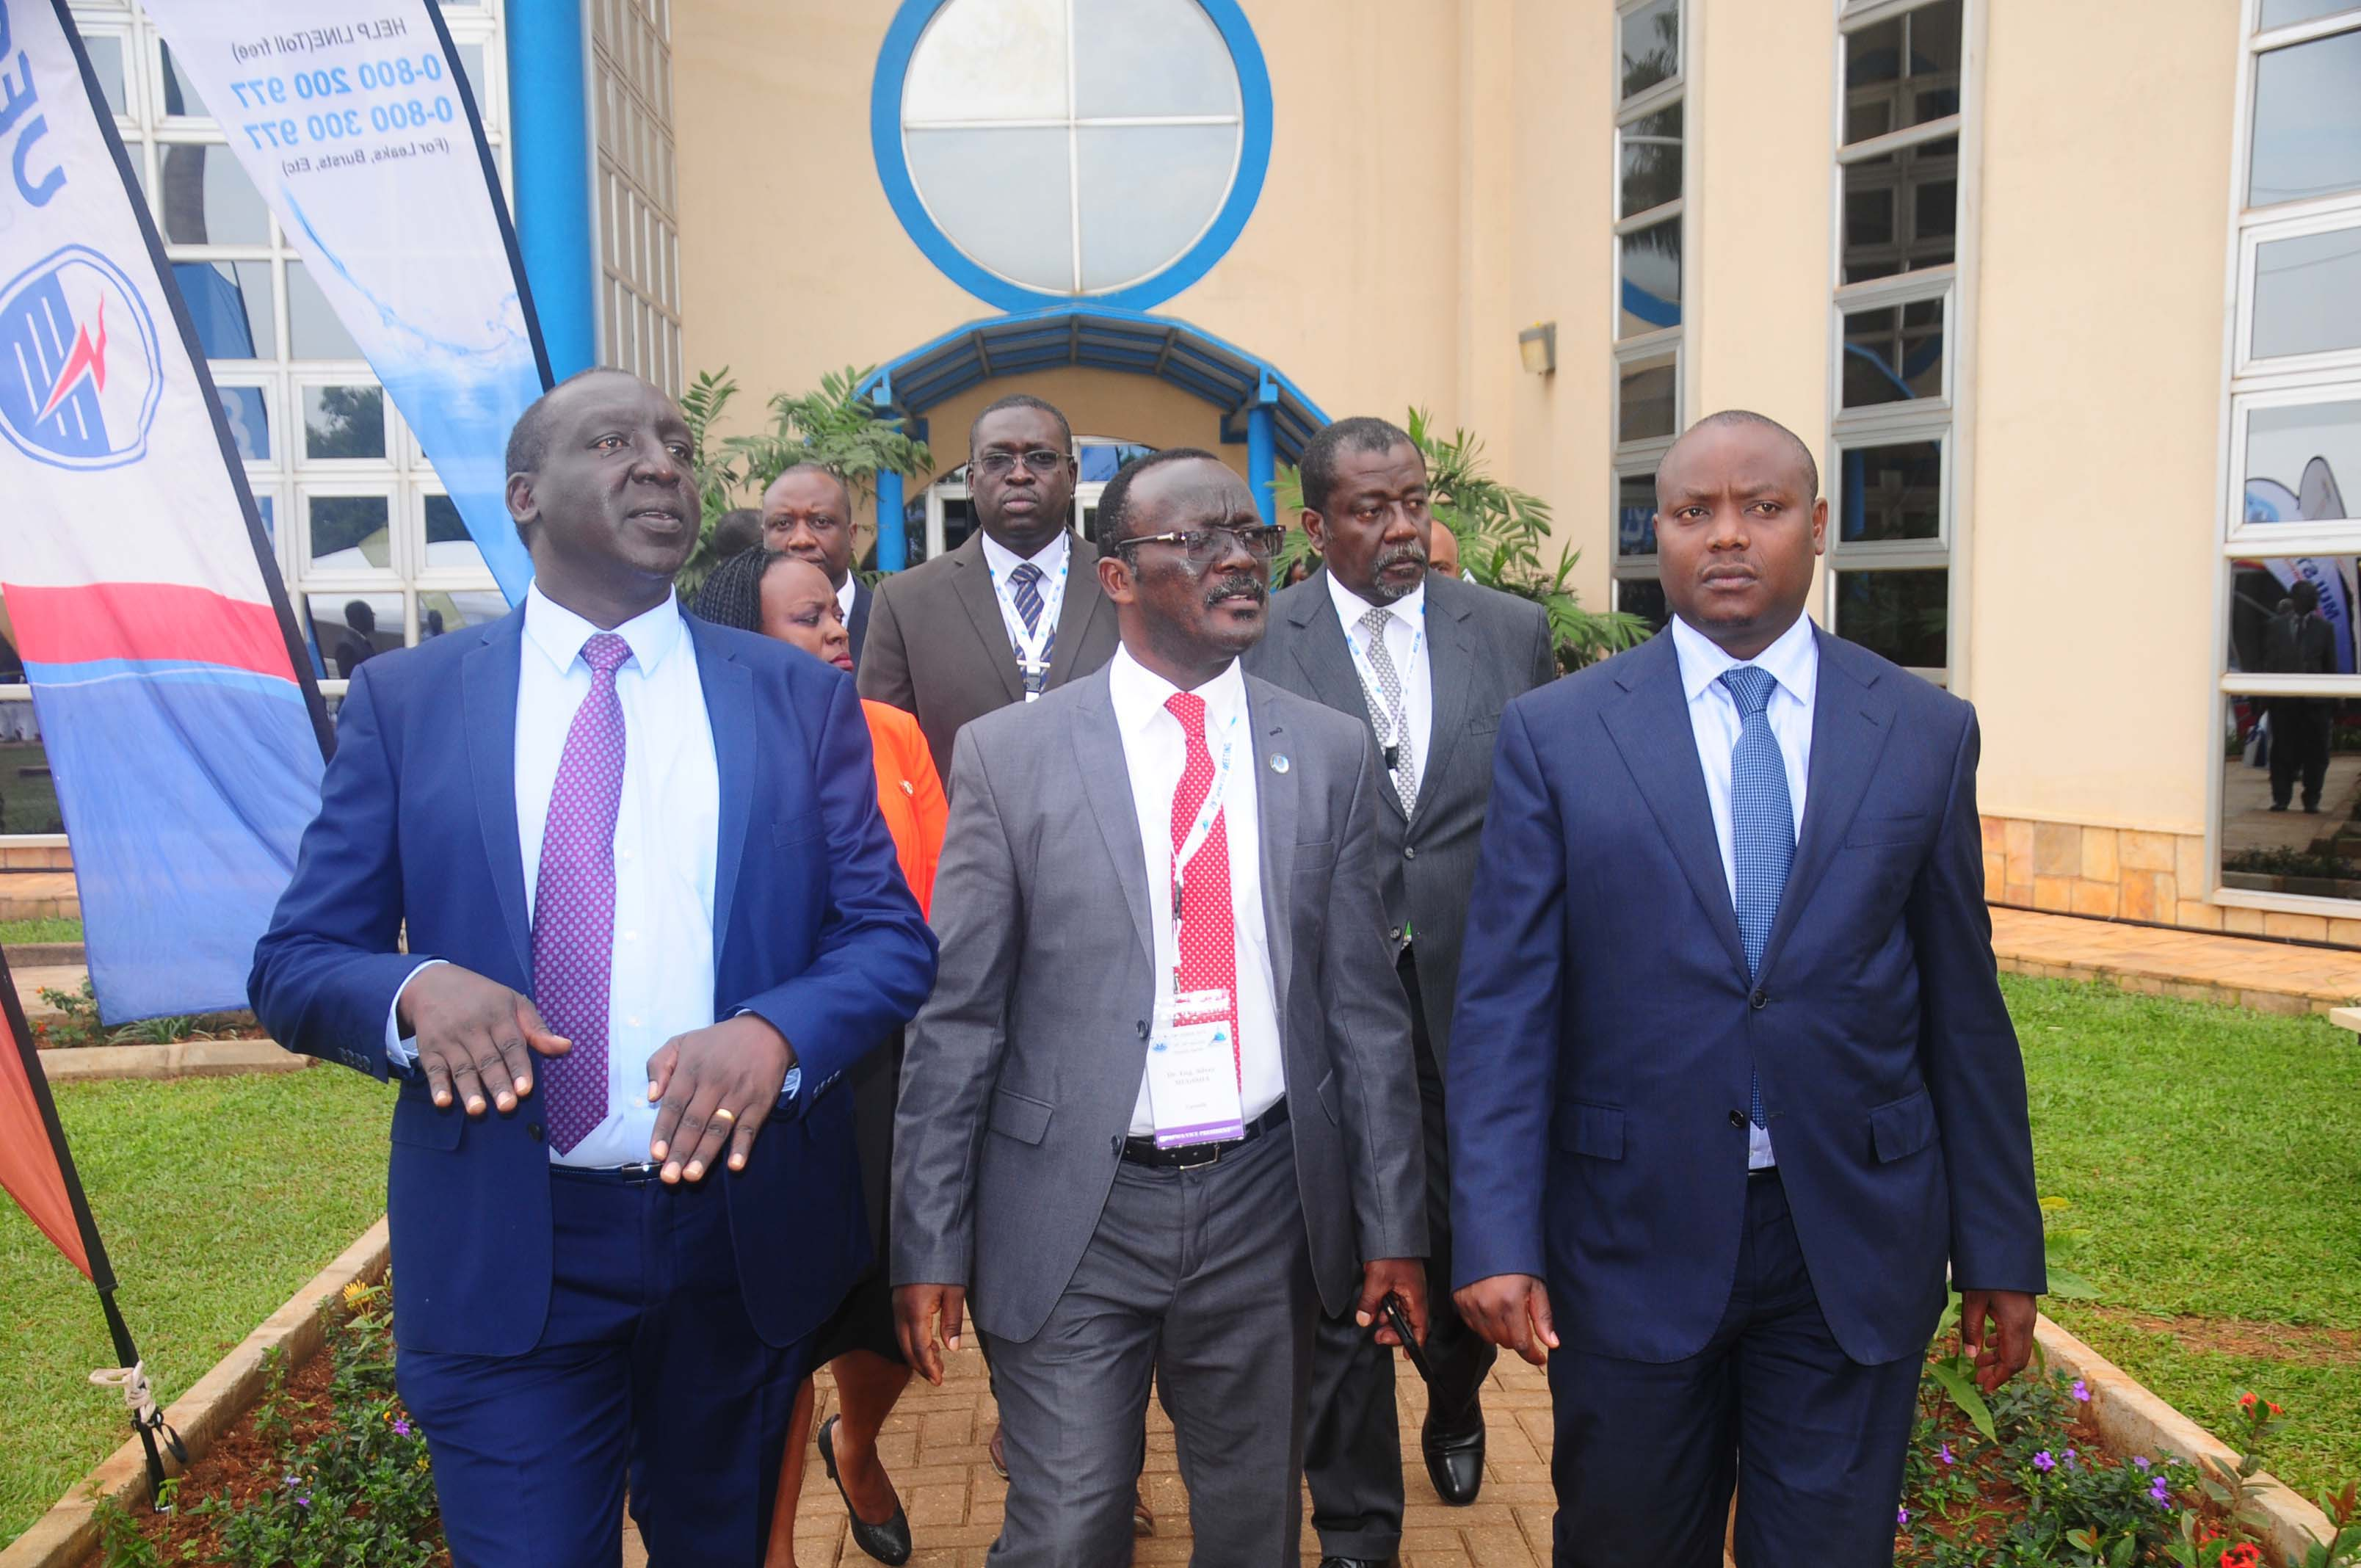 Dr. Chris Ebal the NWSC Board Chair, Eng. Silver Mugisha., MD NWSC and State Minister for Water, Ronald Kibule the opening ceremony for the 79th AfWA meeting at the NWSC International Resource Training Center in Bugolobi July 17 (FILE PHOTO)